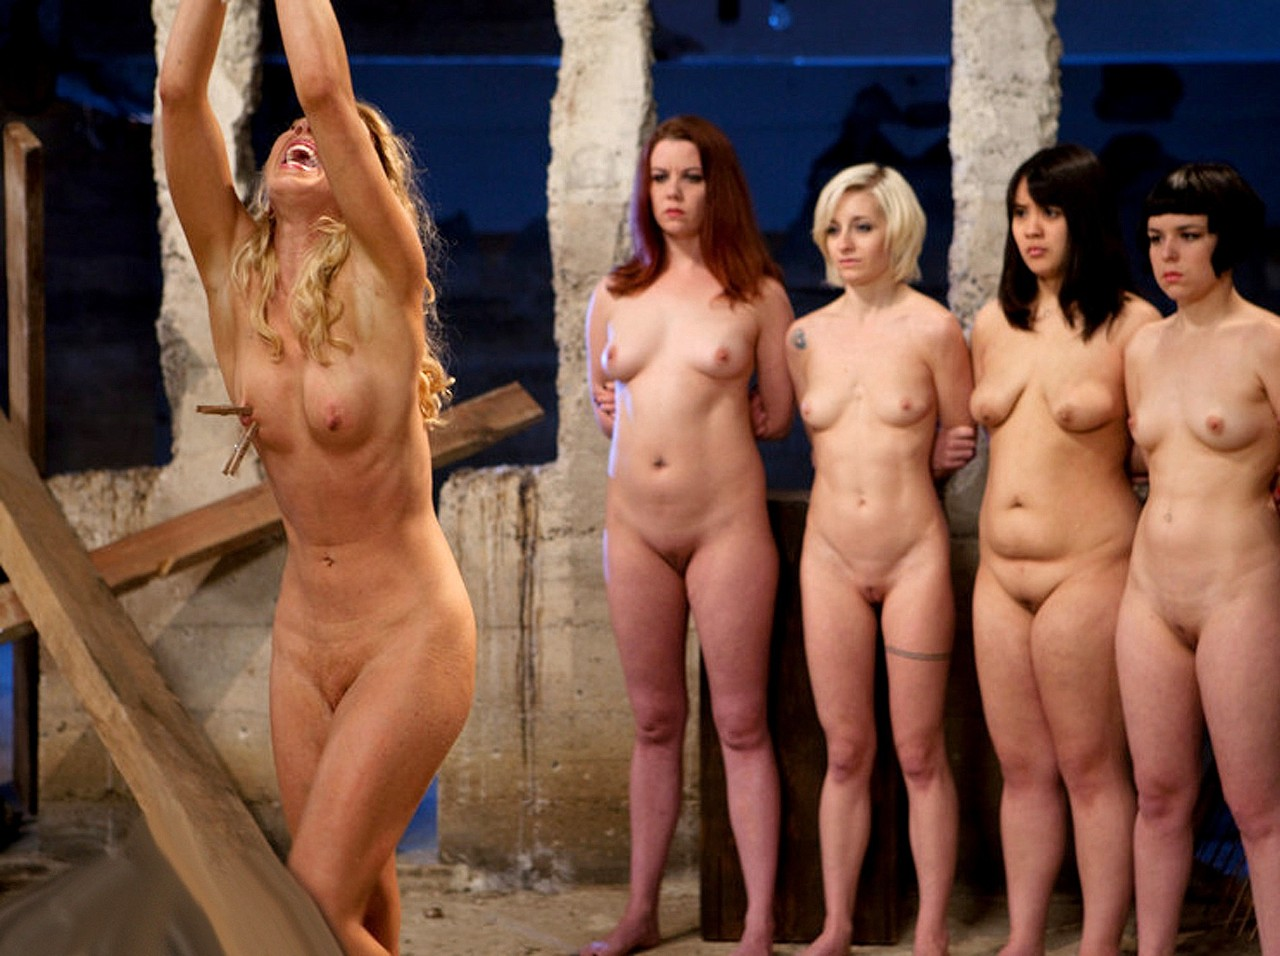 A women naked in pillory hentai gallery